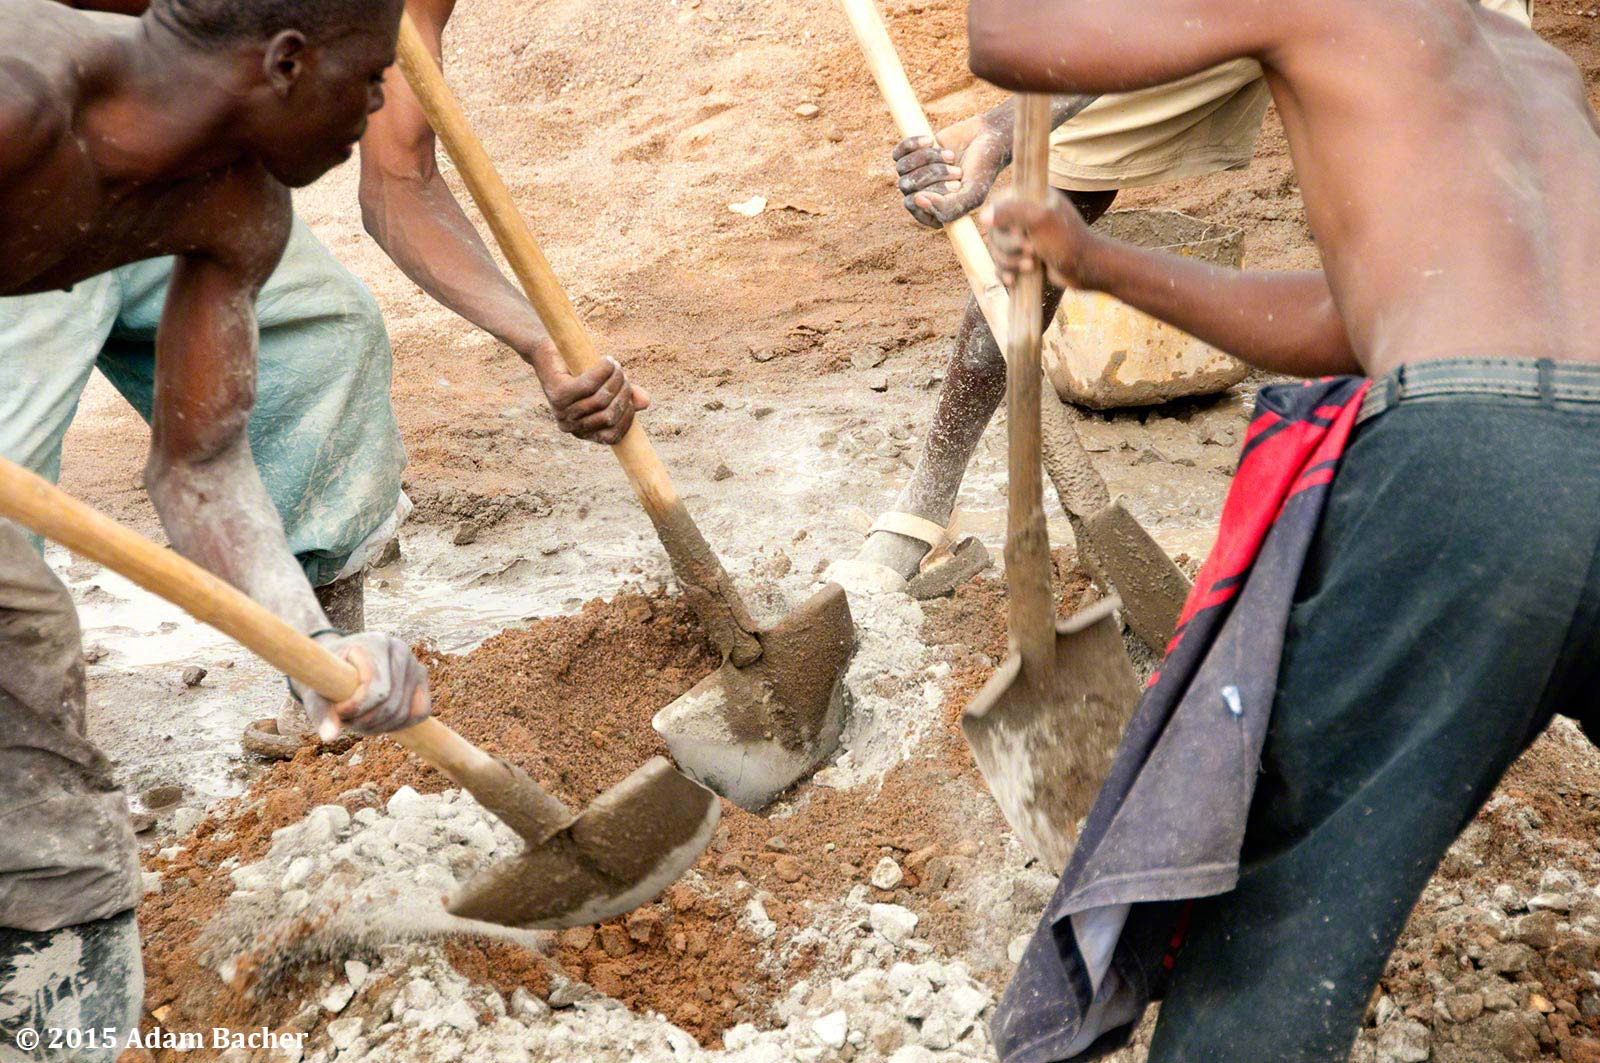 portland oregon editorial photographer in rwanda -workers shoveling cement